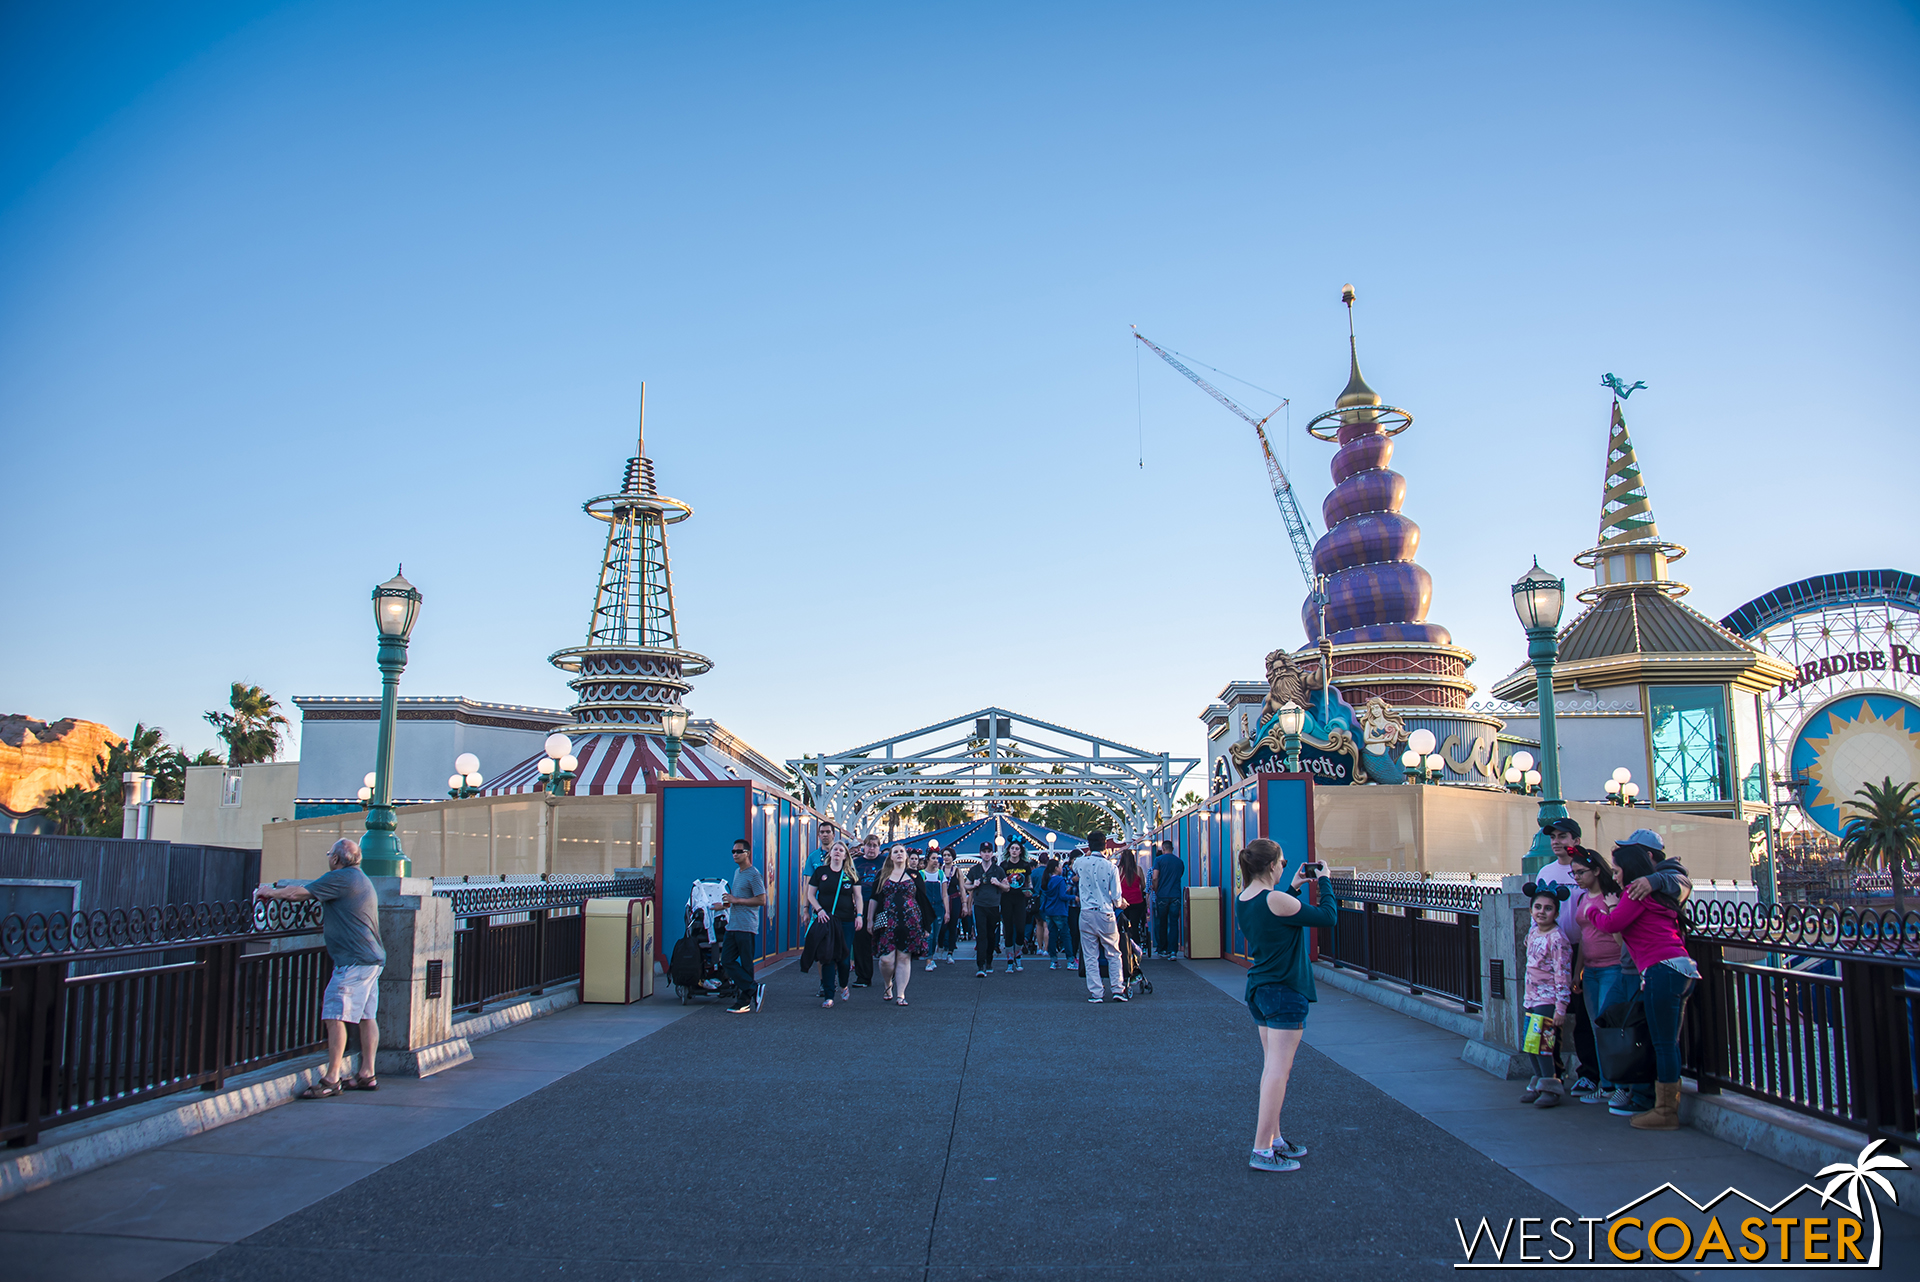 In real life Paradise Pier, changes are already afoot, as the overhead signage has already been taken down.